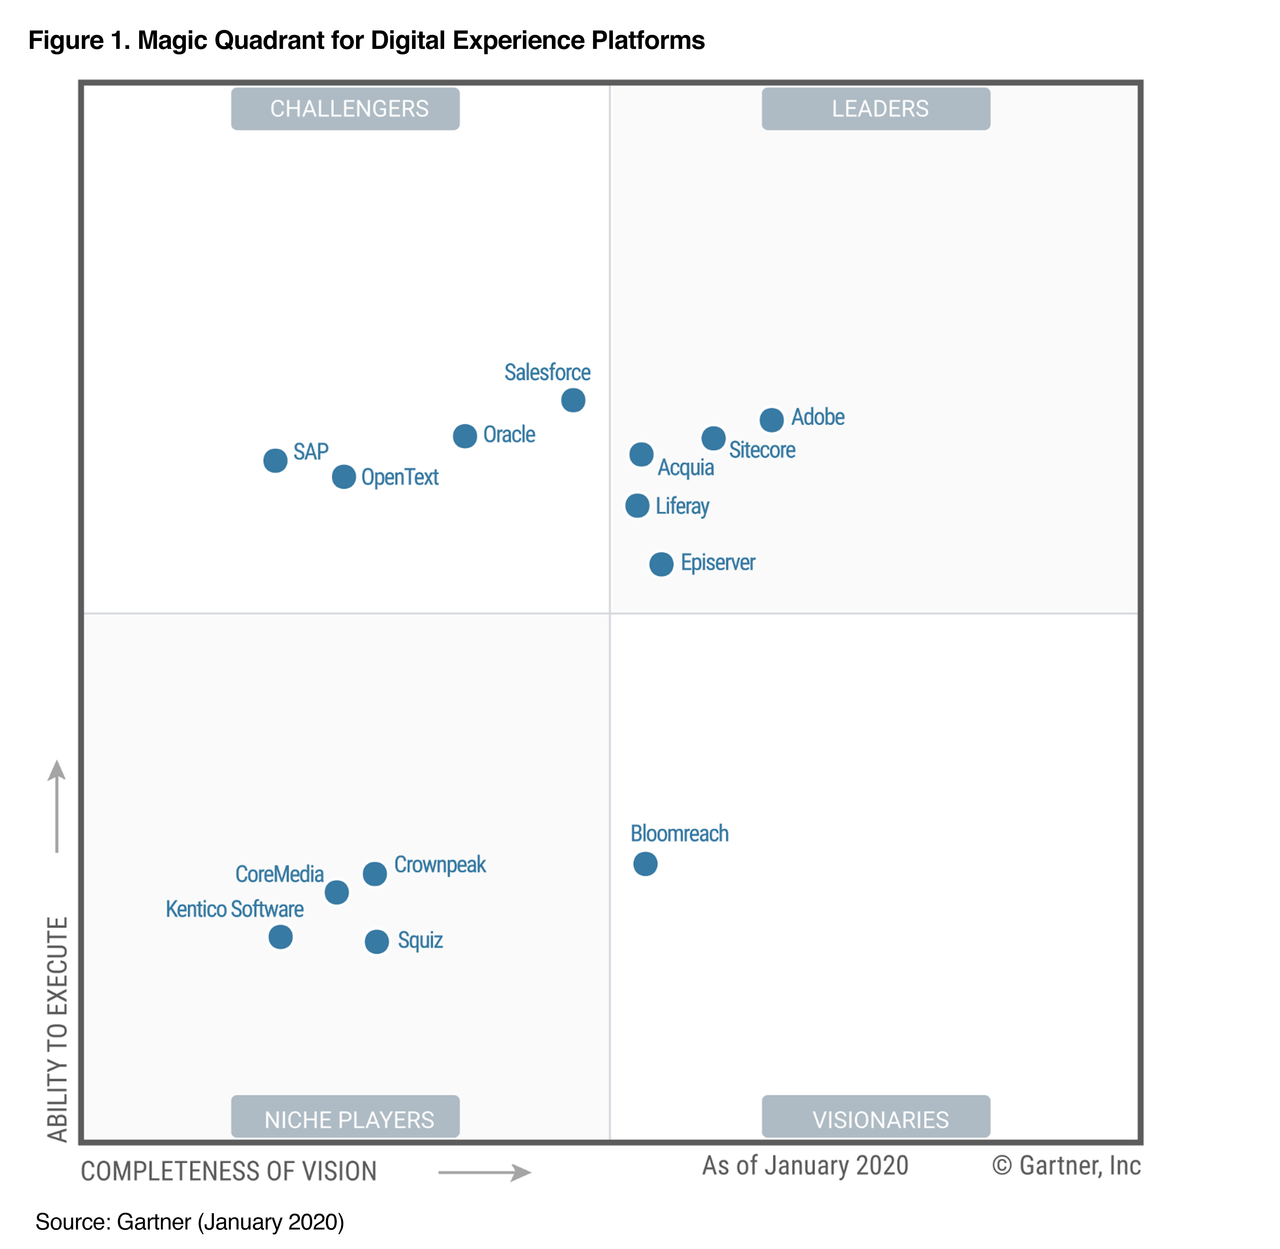 Acquia shown as a Leader in the 2020 Magic Quadrant for DXP